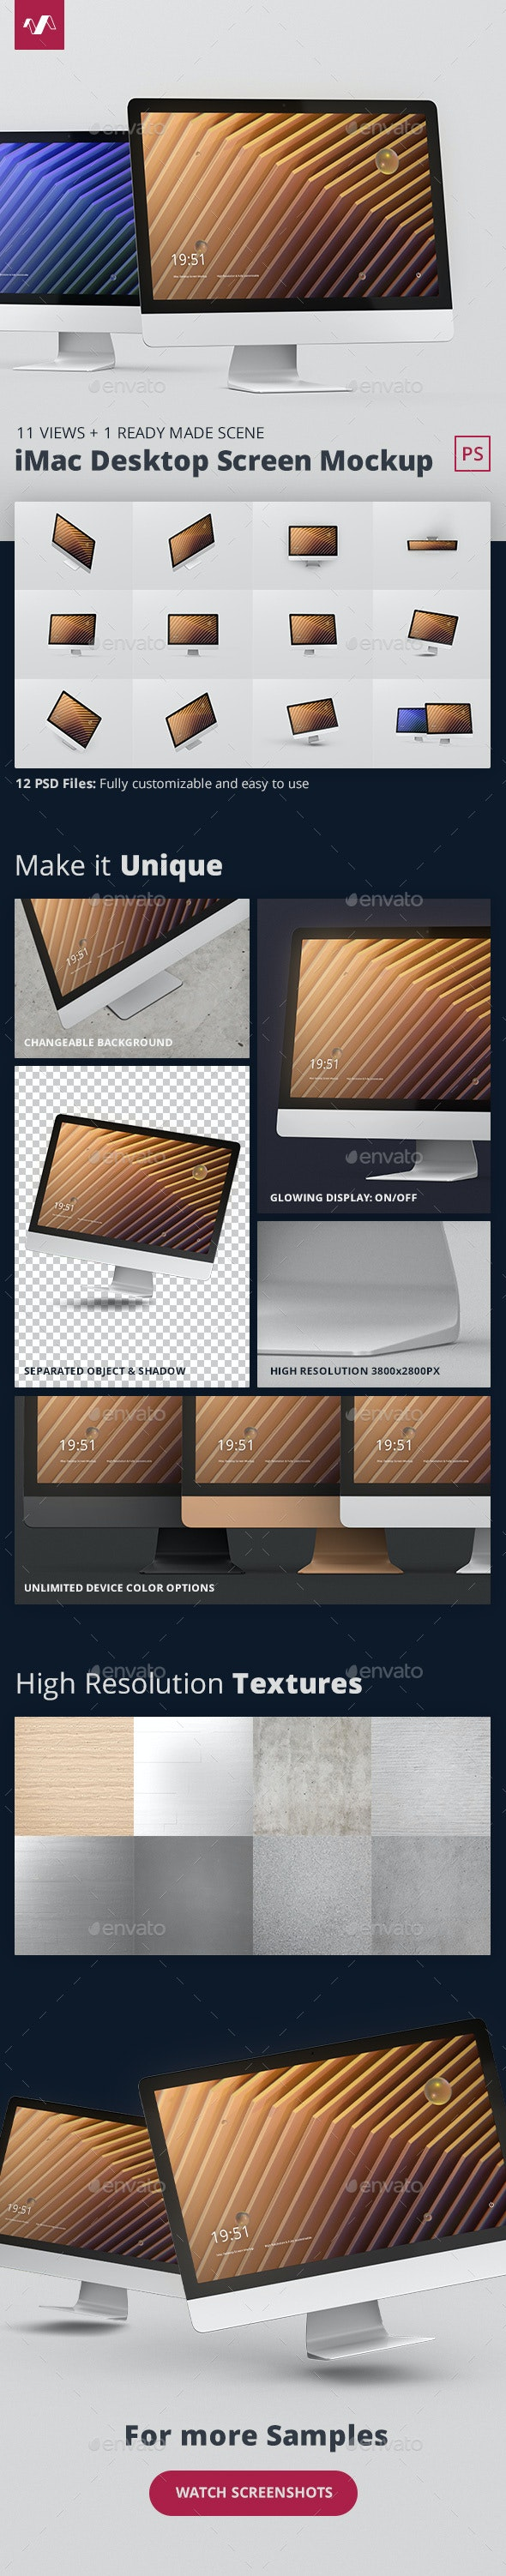 Desktop Screen Mockup - Monitors Displays